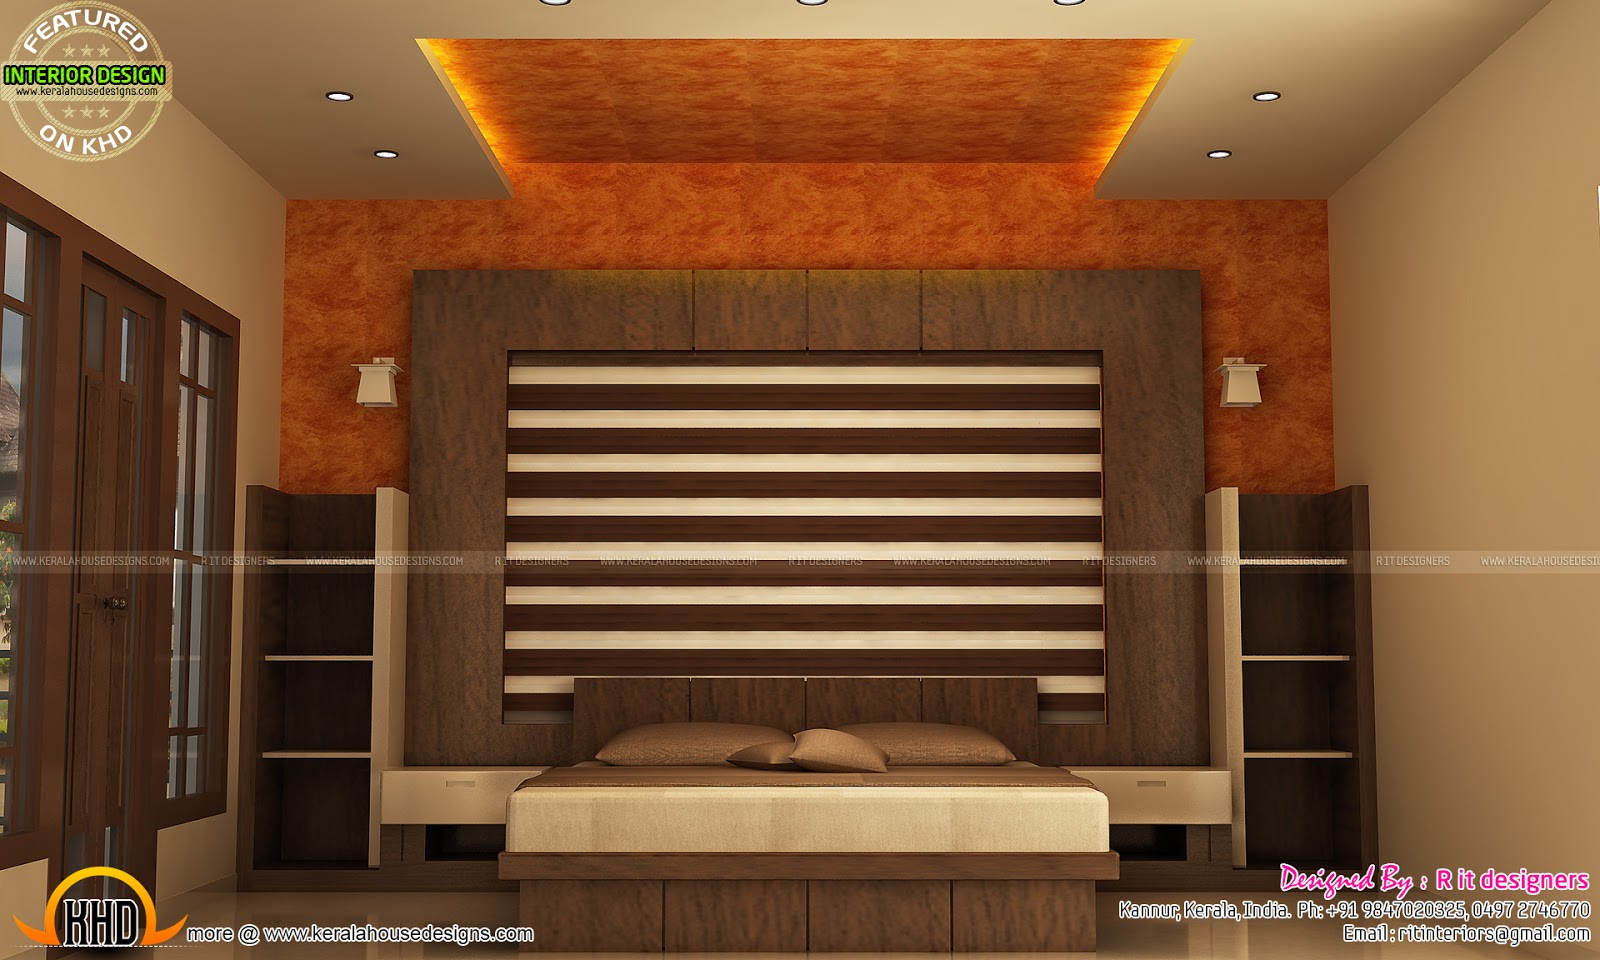 Interior Designers In Kerala For Home: Modular Kitchen, Bedroom, Teen Bedroom And Dining Interior